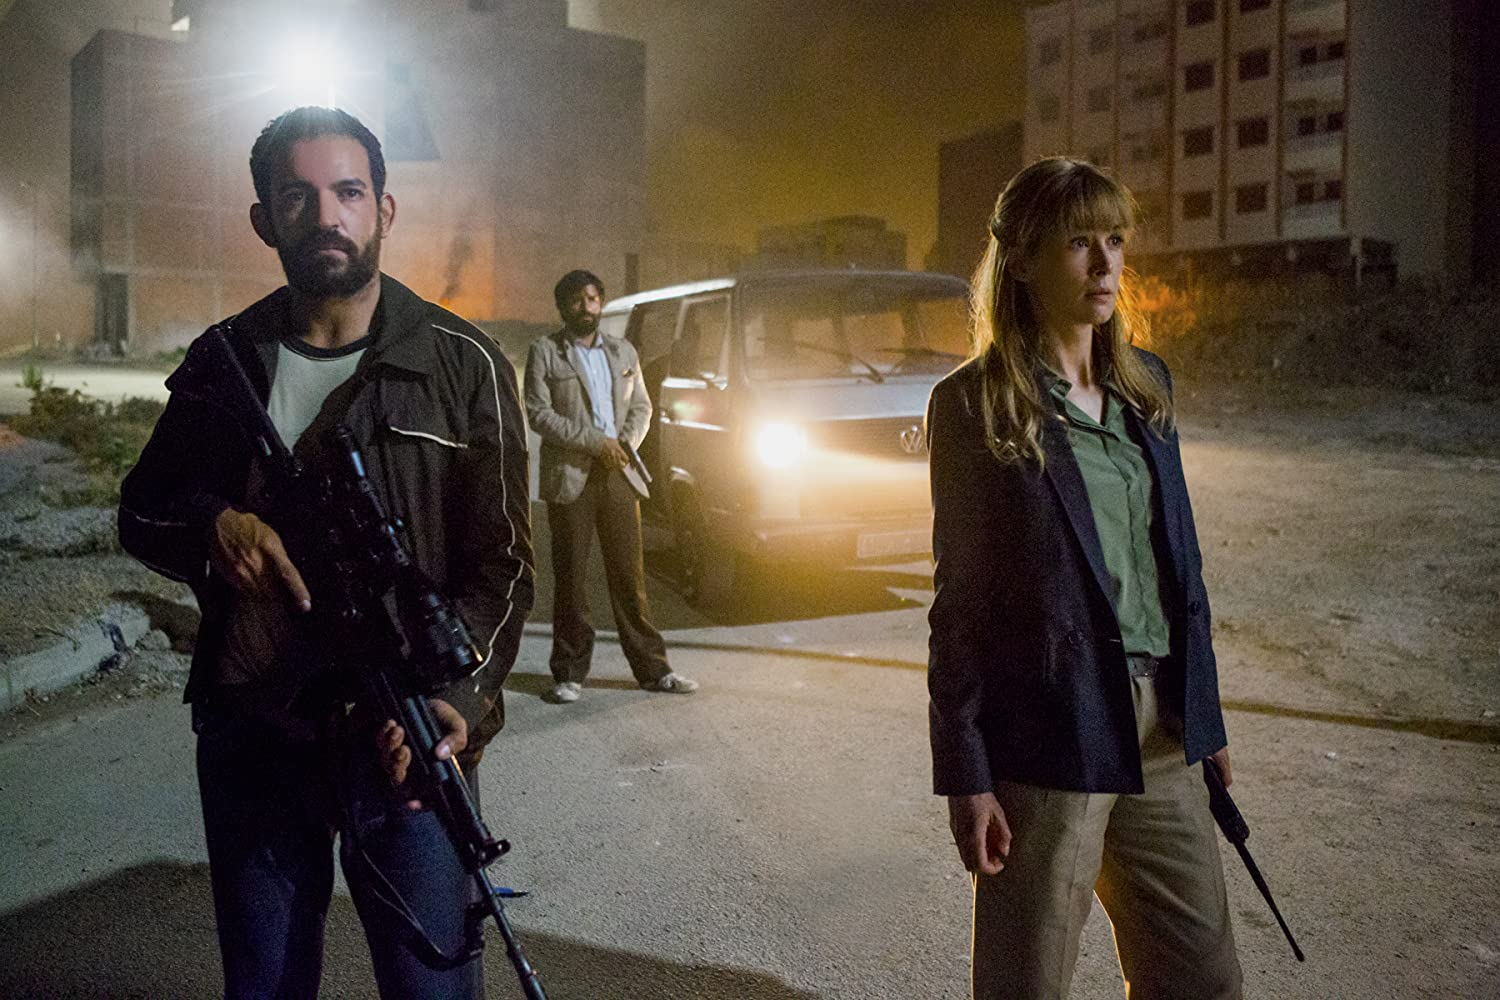 Rosamund Pike, Ben Affan, and Mohamed Attougui in Beirut (2018)